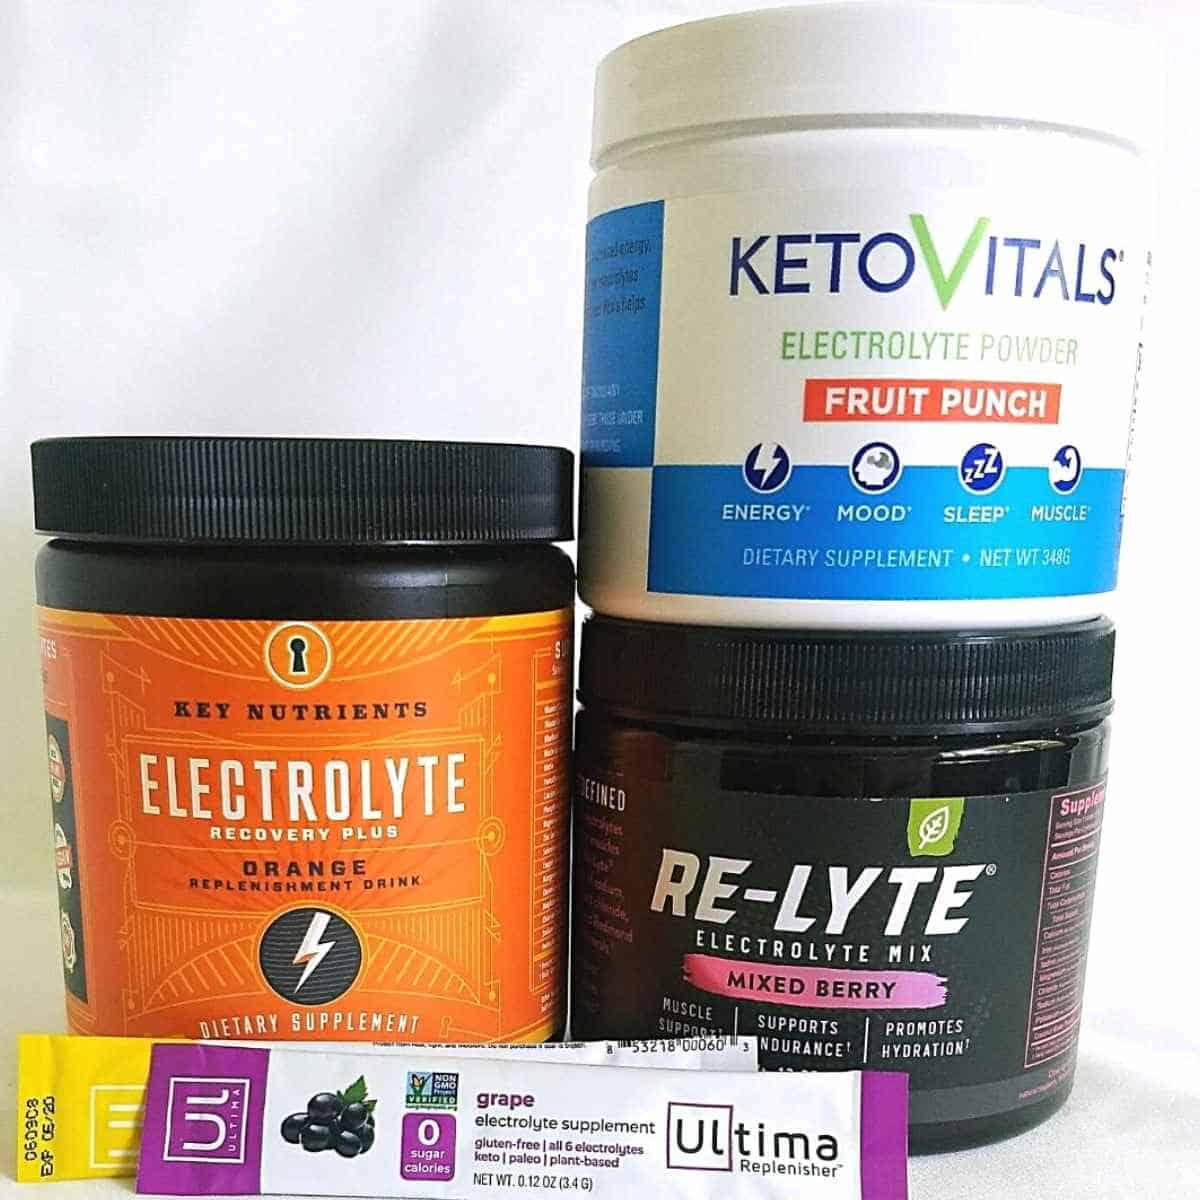 4 brands of electrolyte mixes - Re-Lyte Electrolyte Drink Mix: Review